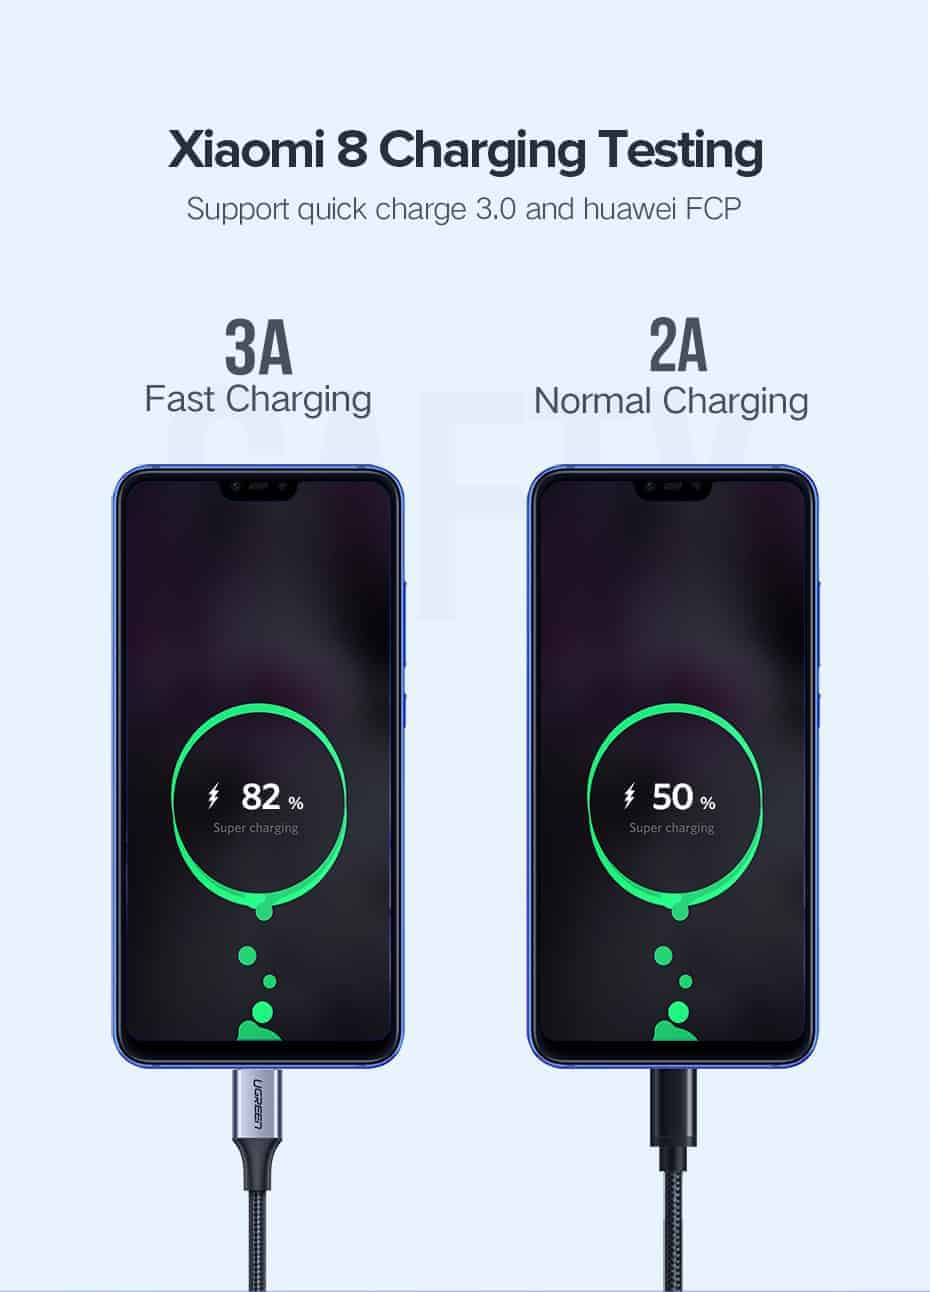 สายชาร์จ Type C UPGRADE 3A Fast CHARGING FOR DEVICES USB-C CONNECTOR-Xiaomi8 Charging Testing